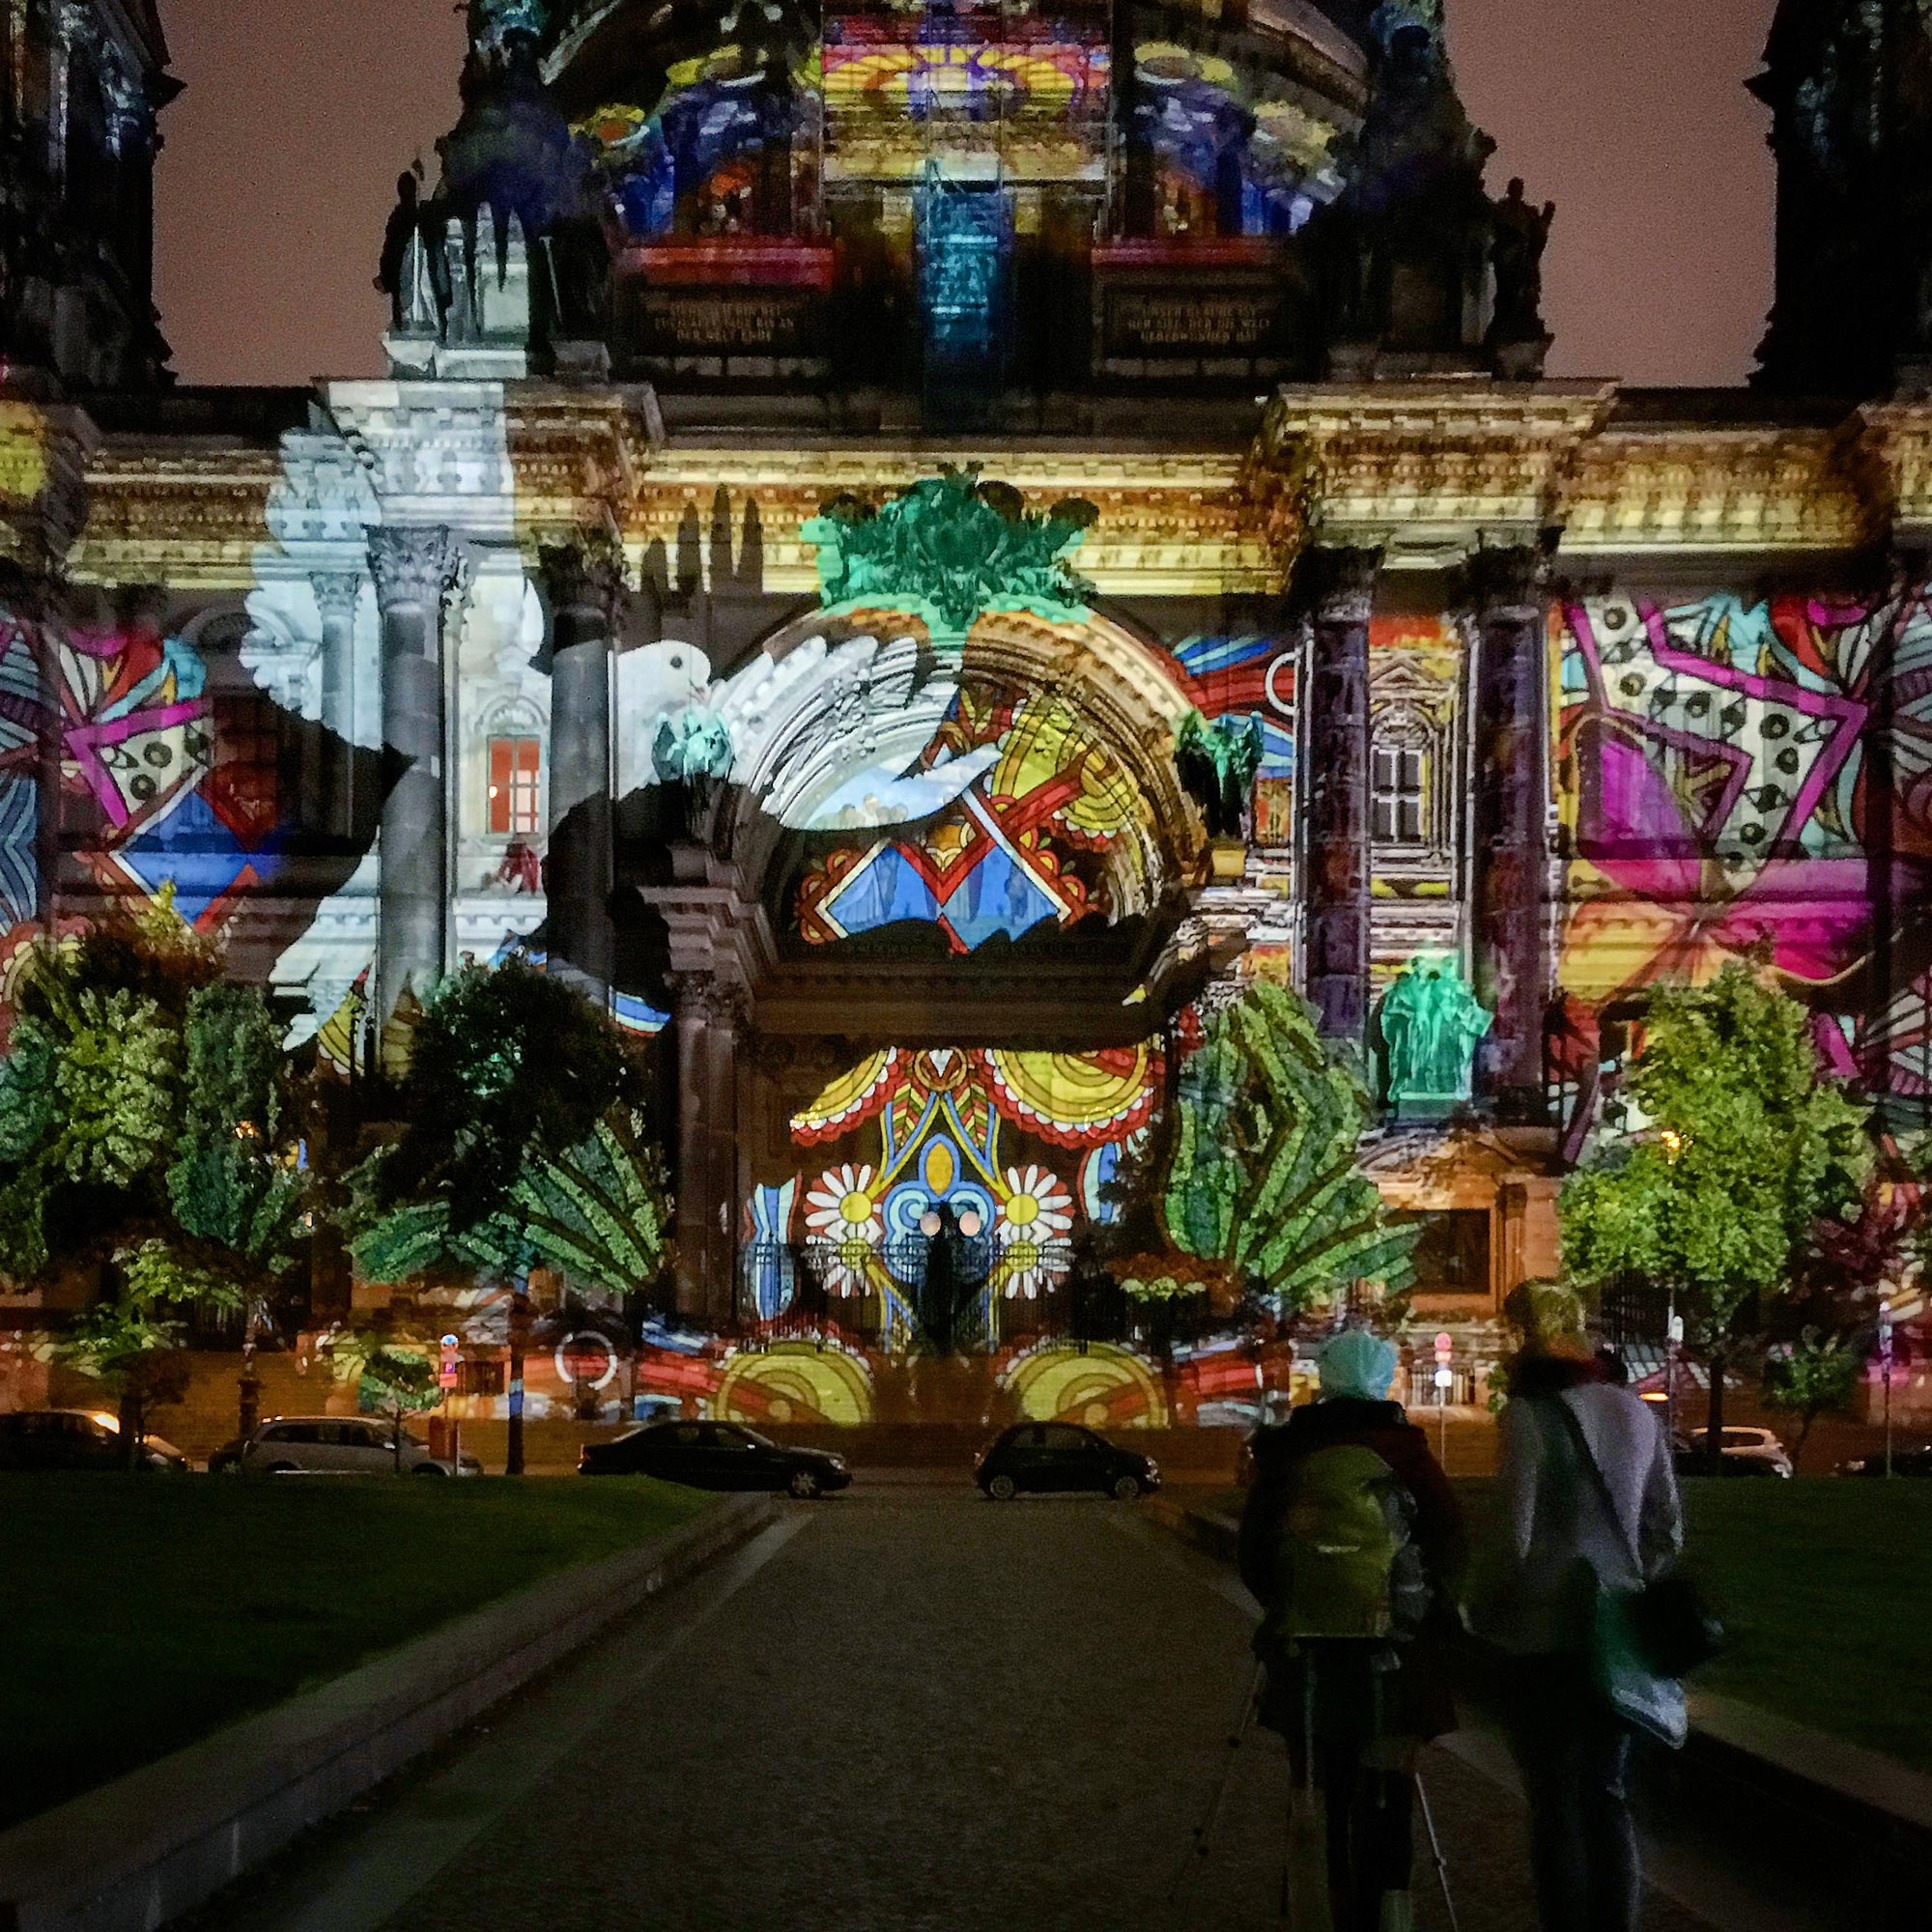 Festival of Lights 2016: Berliner Dom